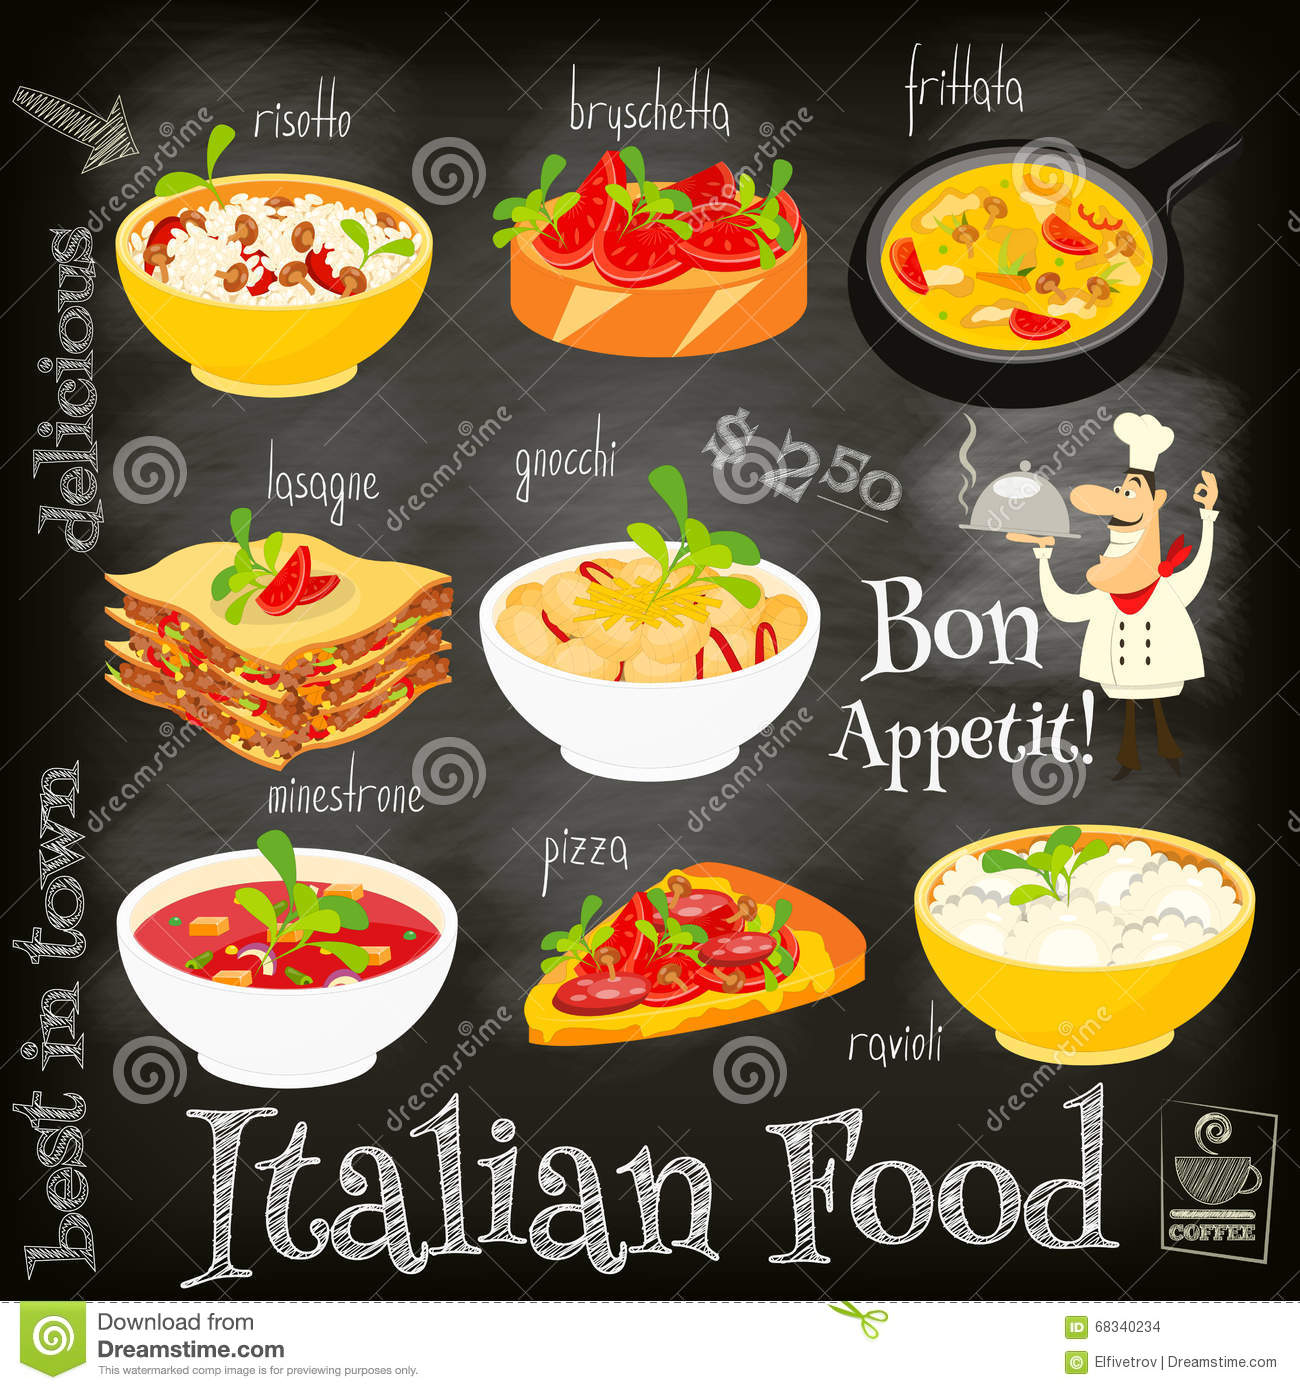 Frittata cartoons illustrations vector stock images for Cooking italian food